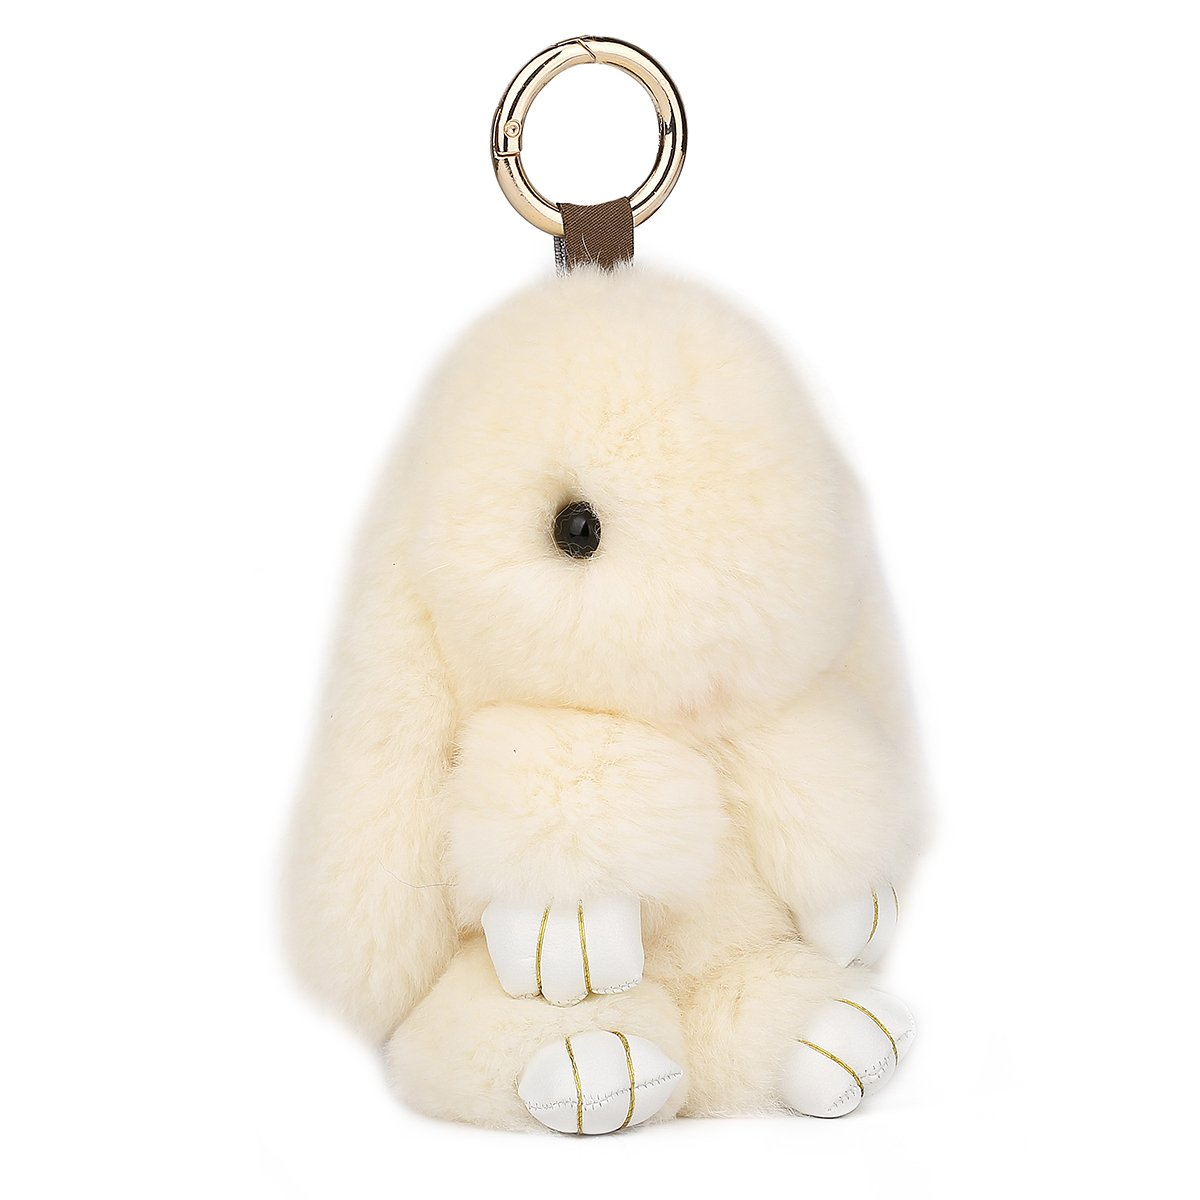 SCIONE Cute Easter Rabbit Bunny Doll Keychain for Women Bag Charms or Car Pendant AK002-Beige